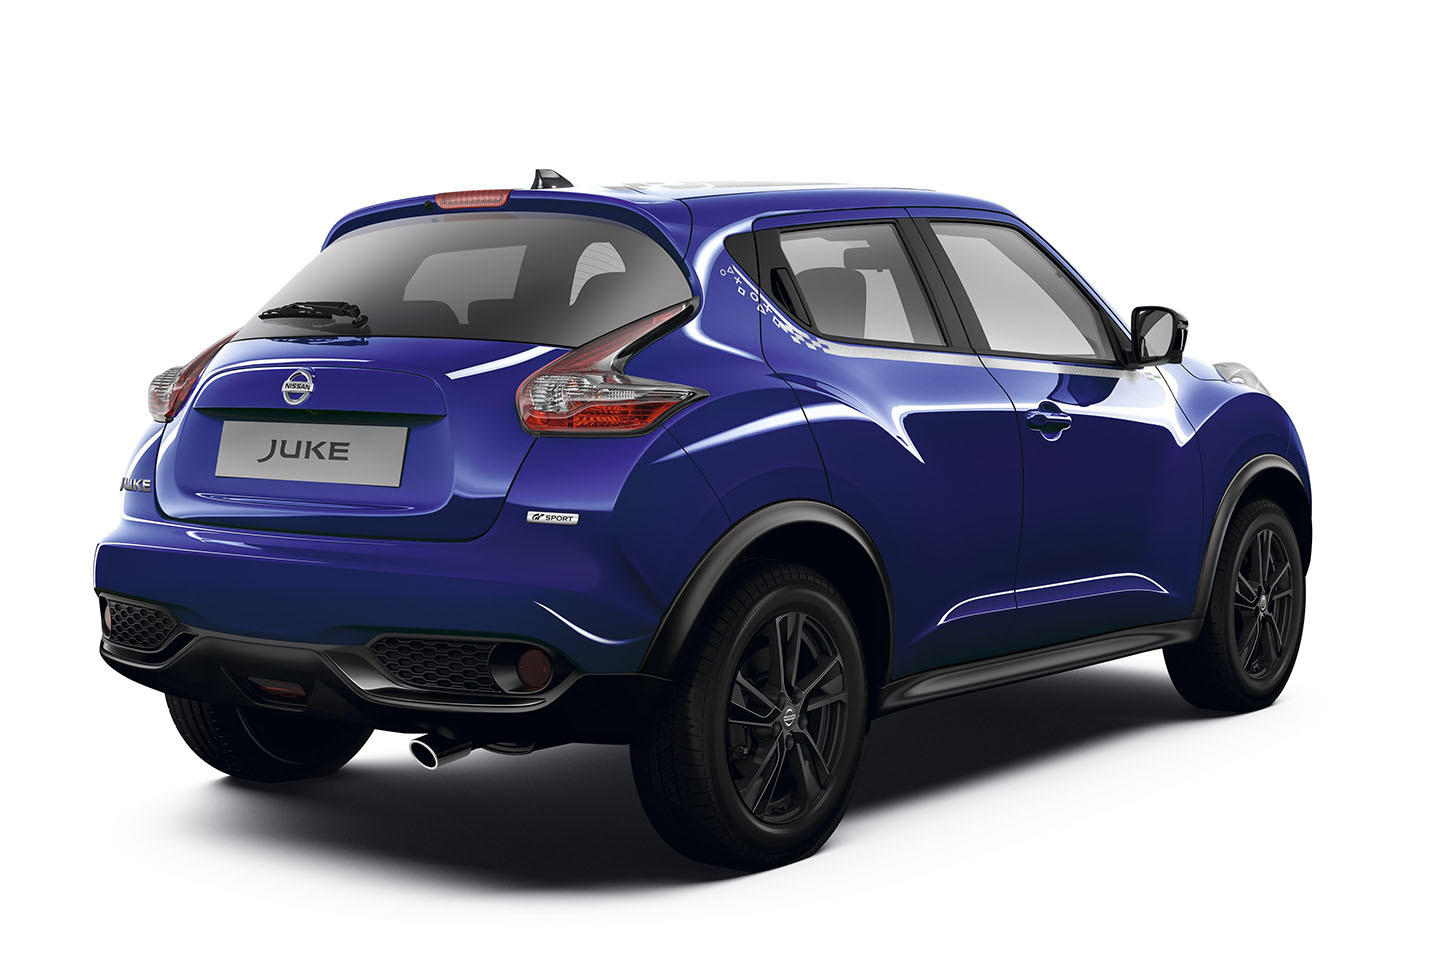 limited run nissan juke gt sport playstation launches in europe. Black Bedroom Furniture Sets. Home Design Ideas